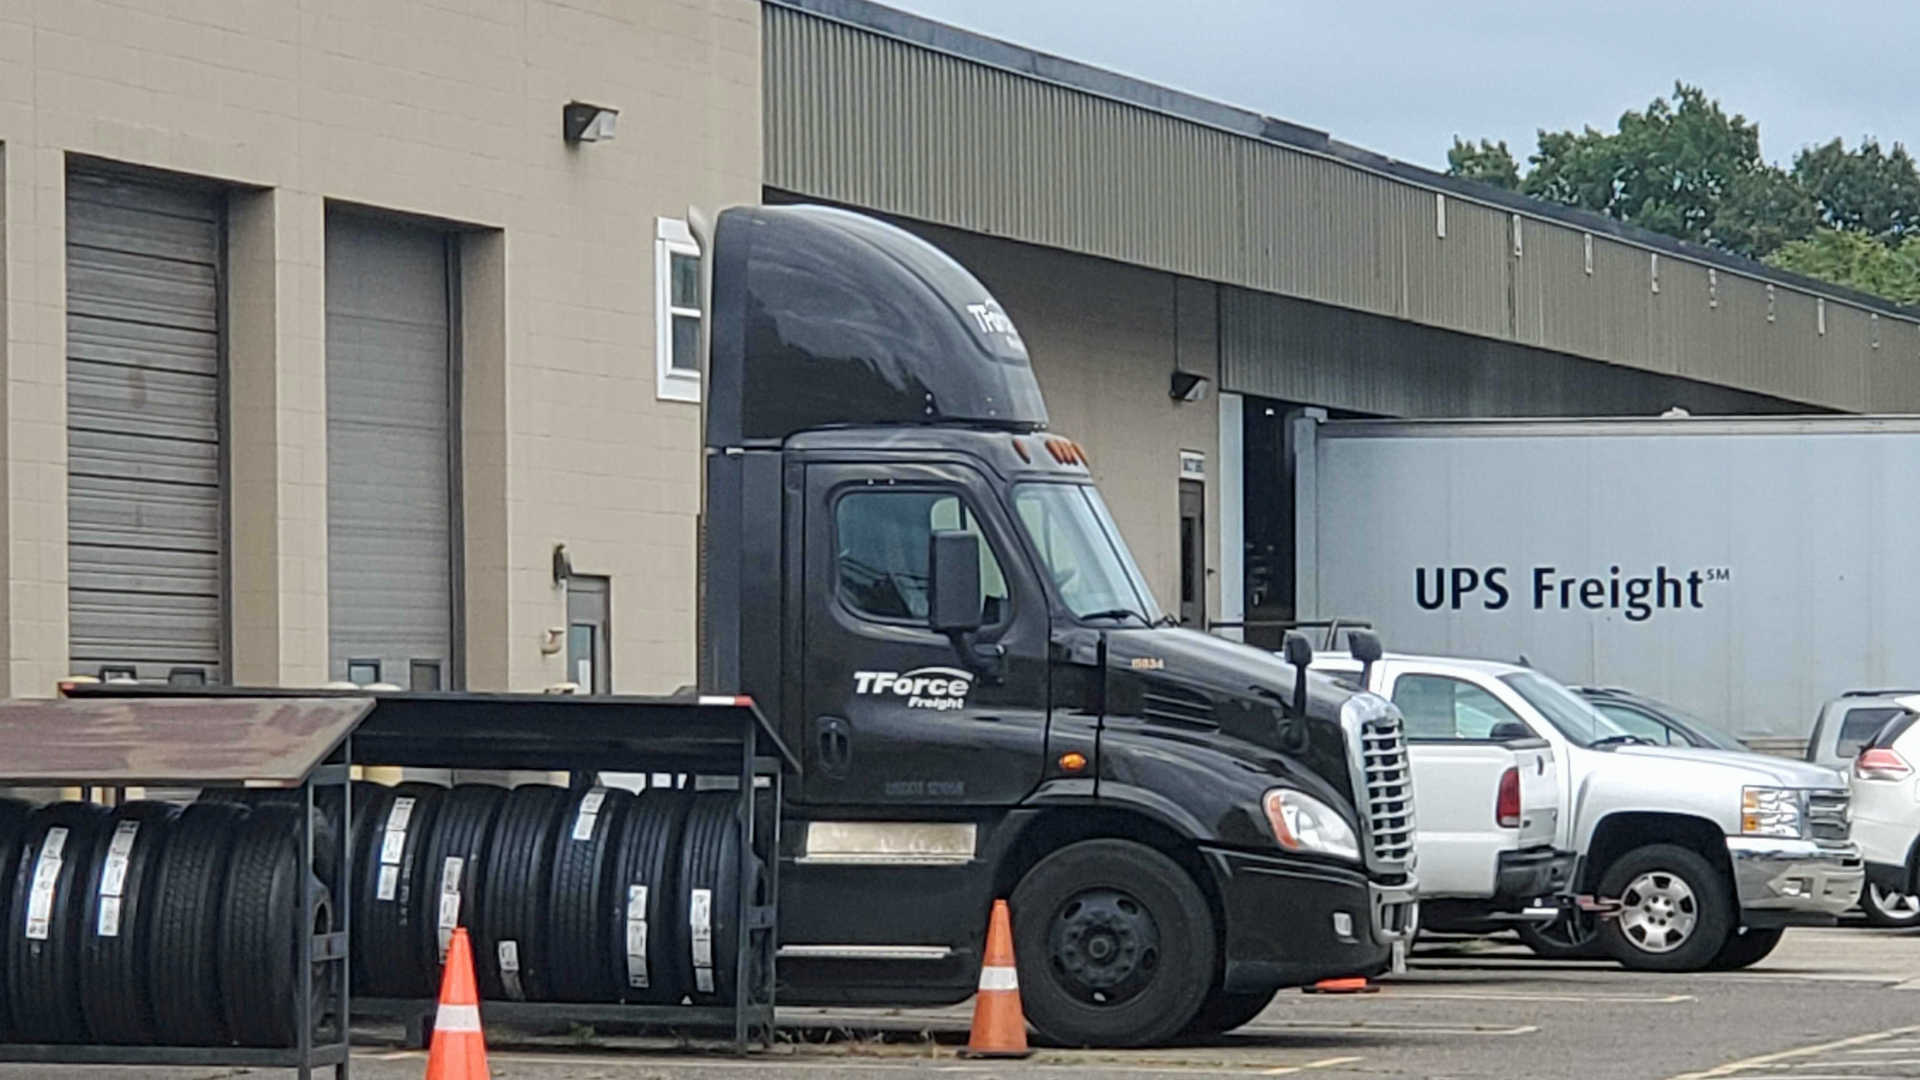 A parked TForce Freight truck with a UPS Freight in the background.